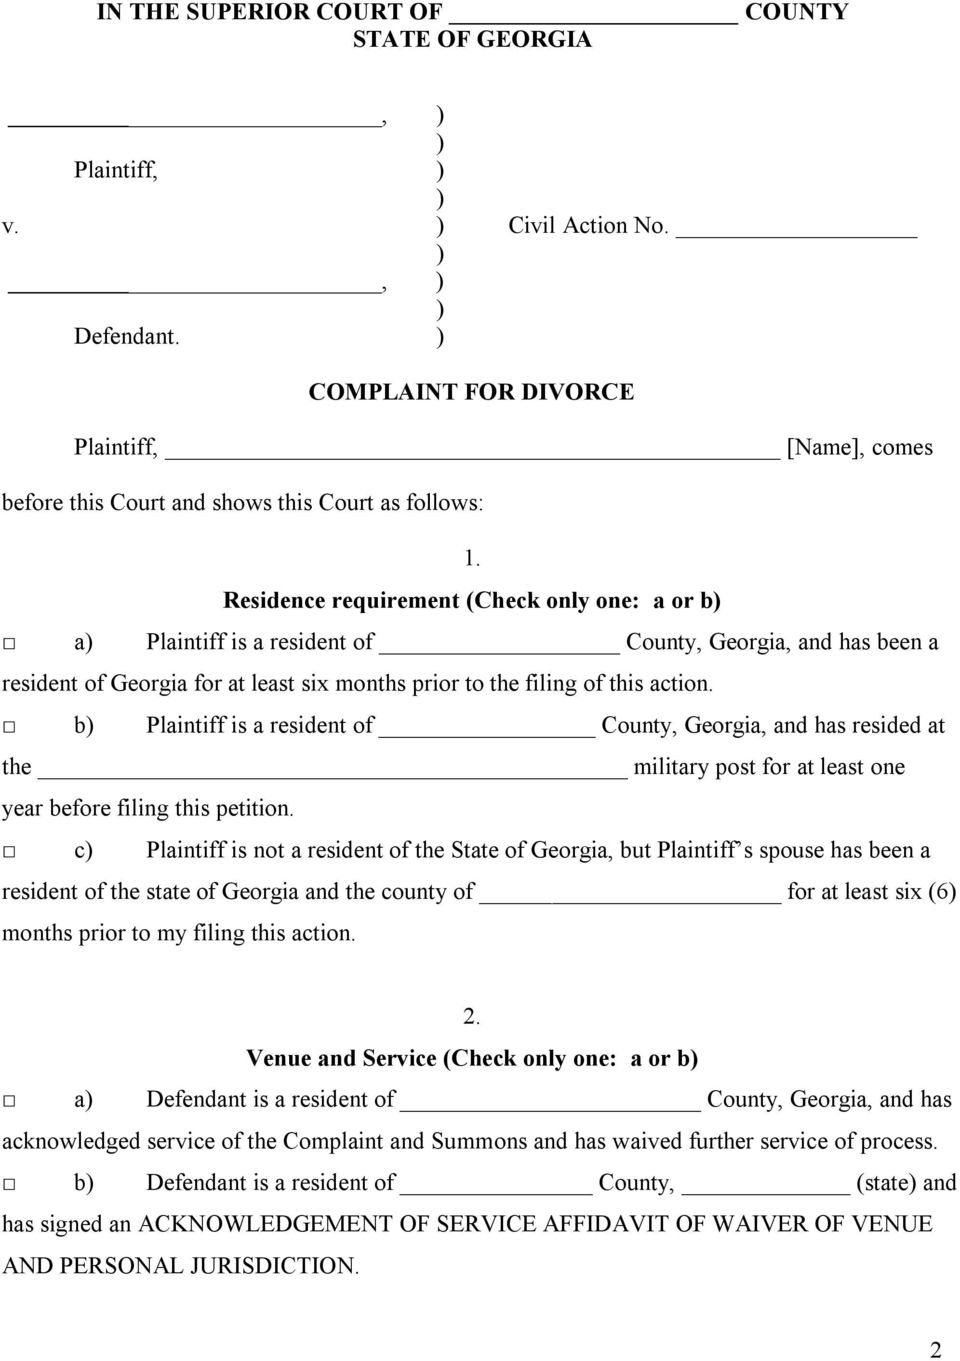 b Plaintiff is a resident of County, Georgia, and has resided at the military post for at least one year before filing this petition.